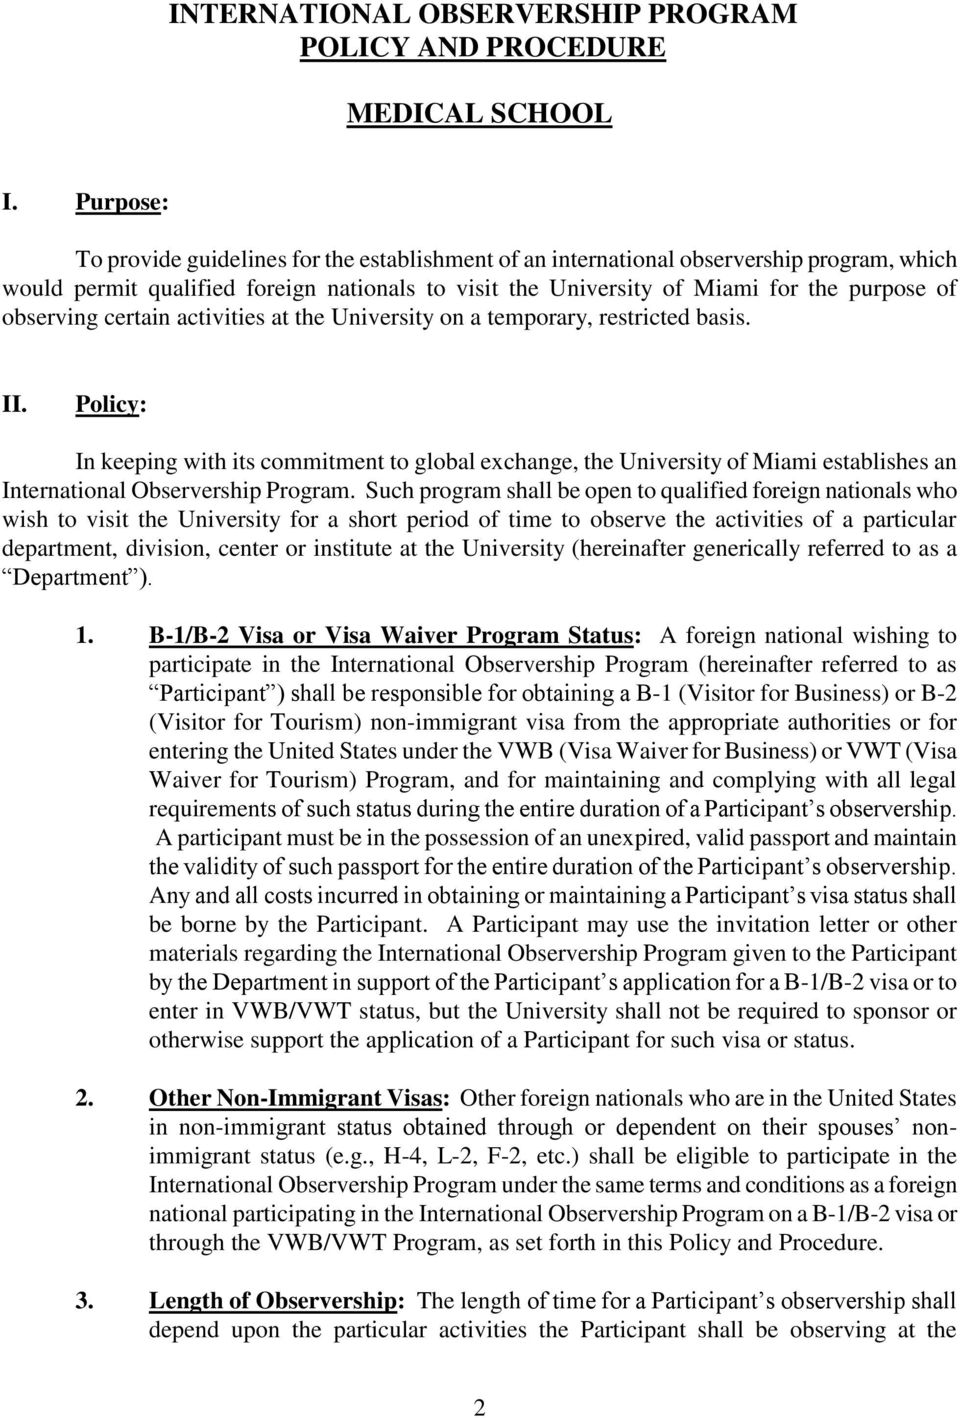 UNIVERSITY OF MIAMI INTERNATIONAL OBSERVERSHIP PROGRAM